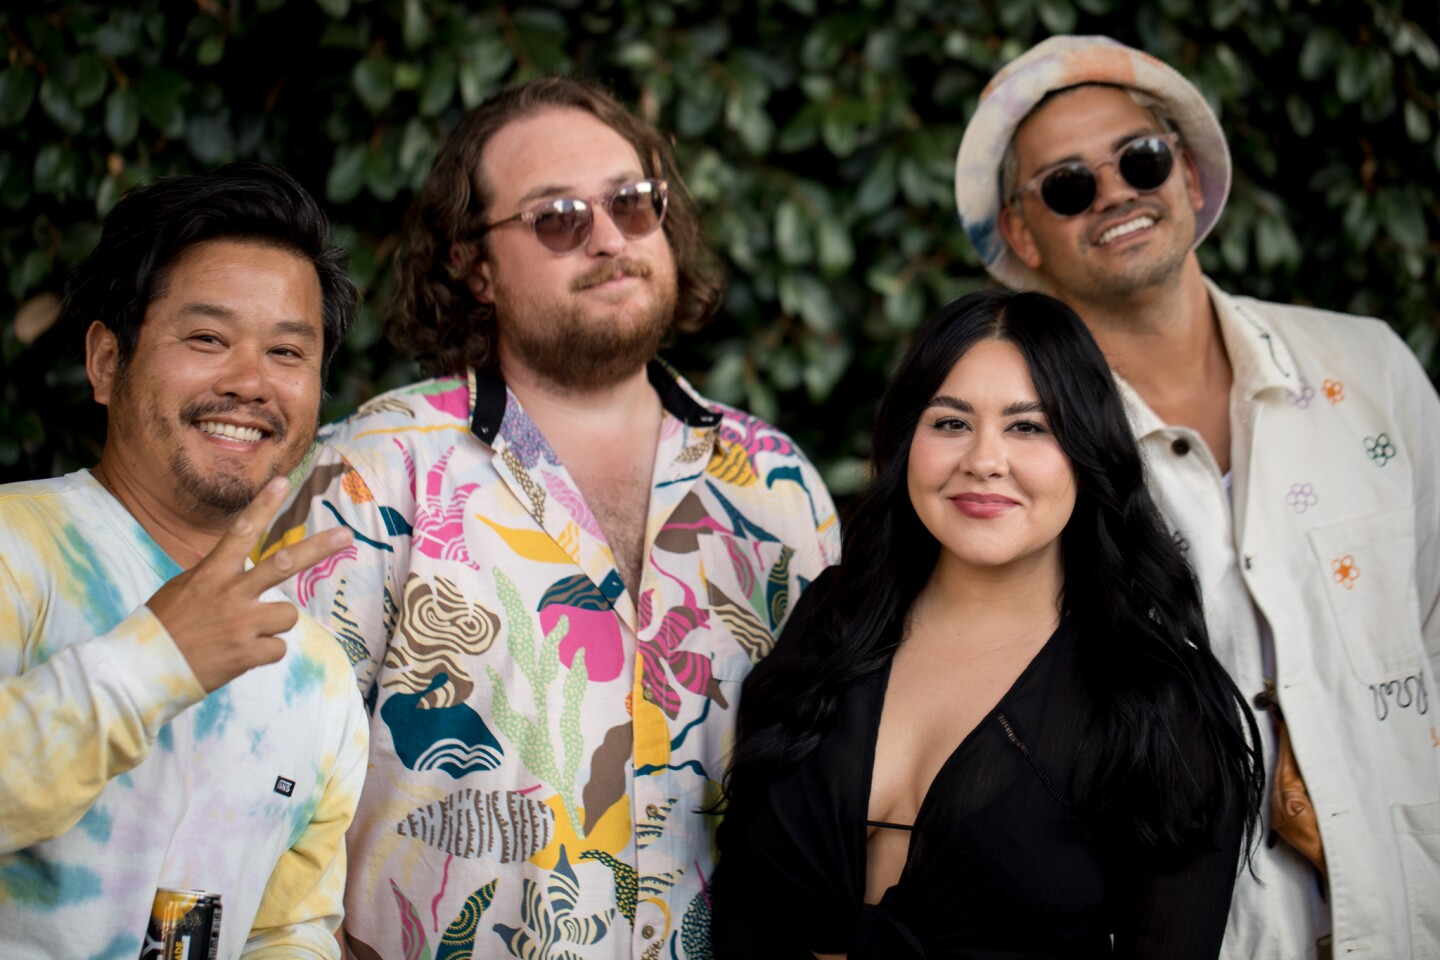 San Diegans celebrated their independence at Petco Park for the sold-out Black Book in the Park with headliner Chris Lake.